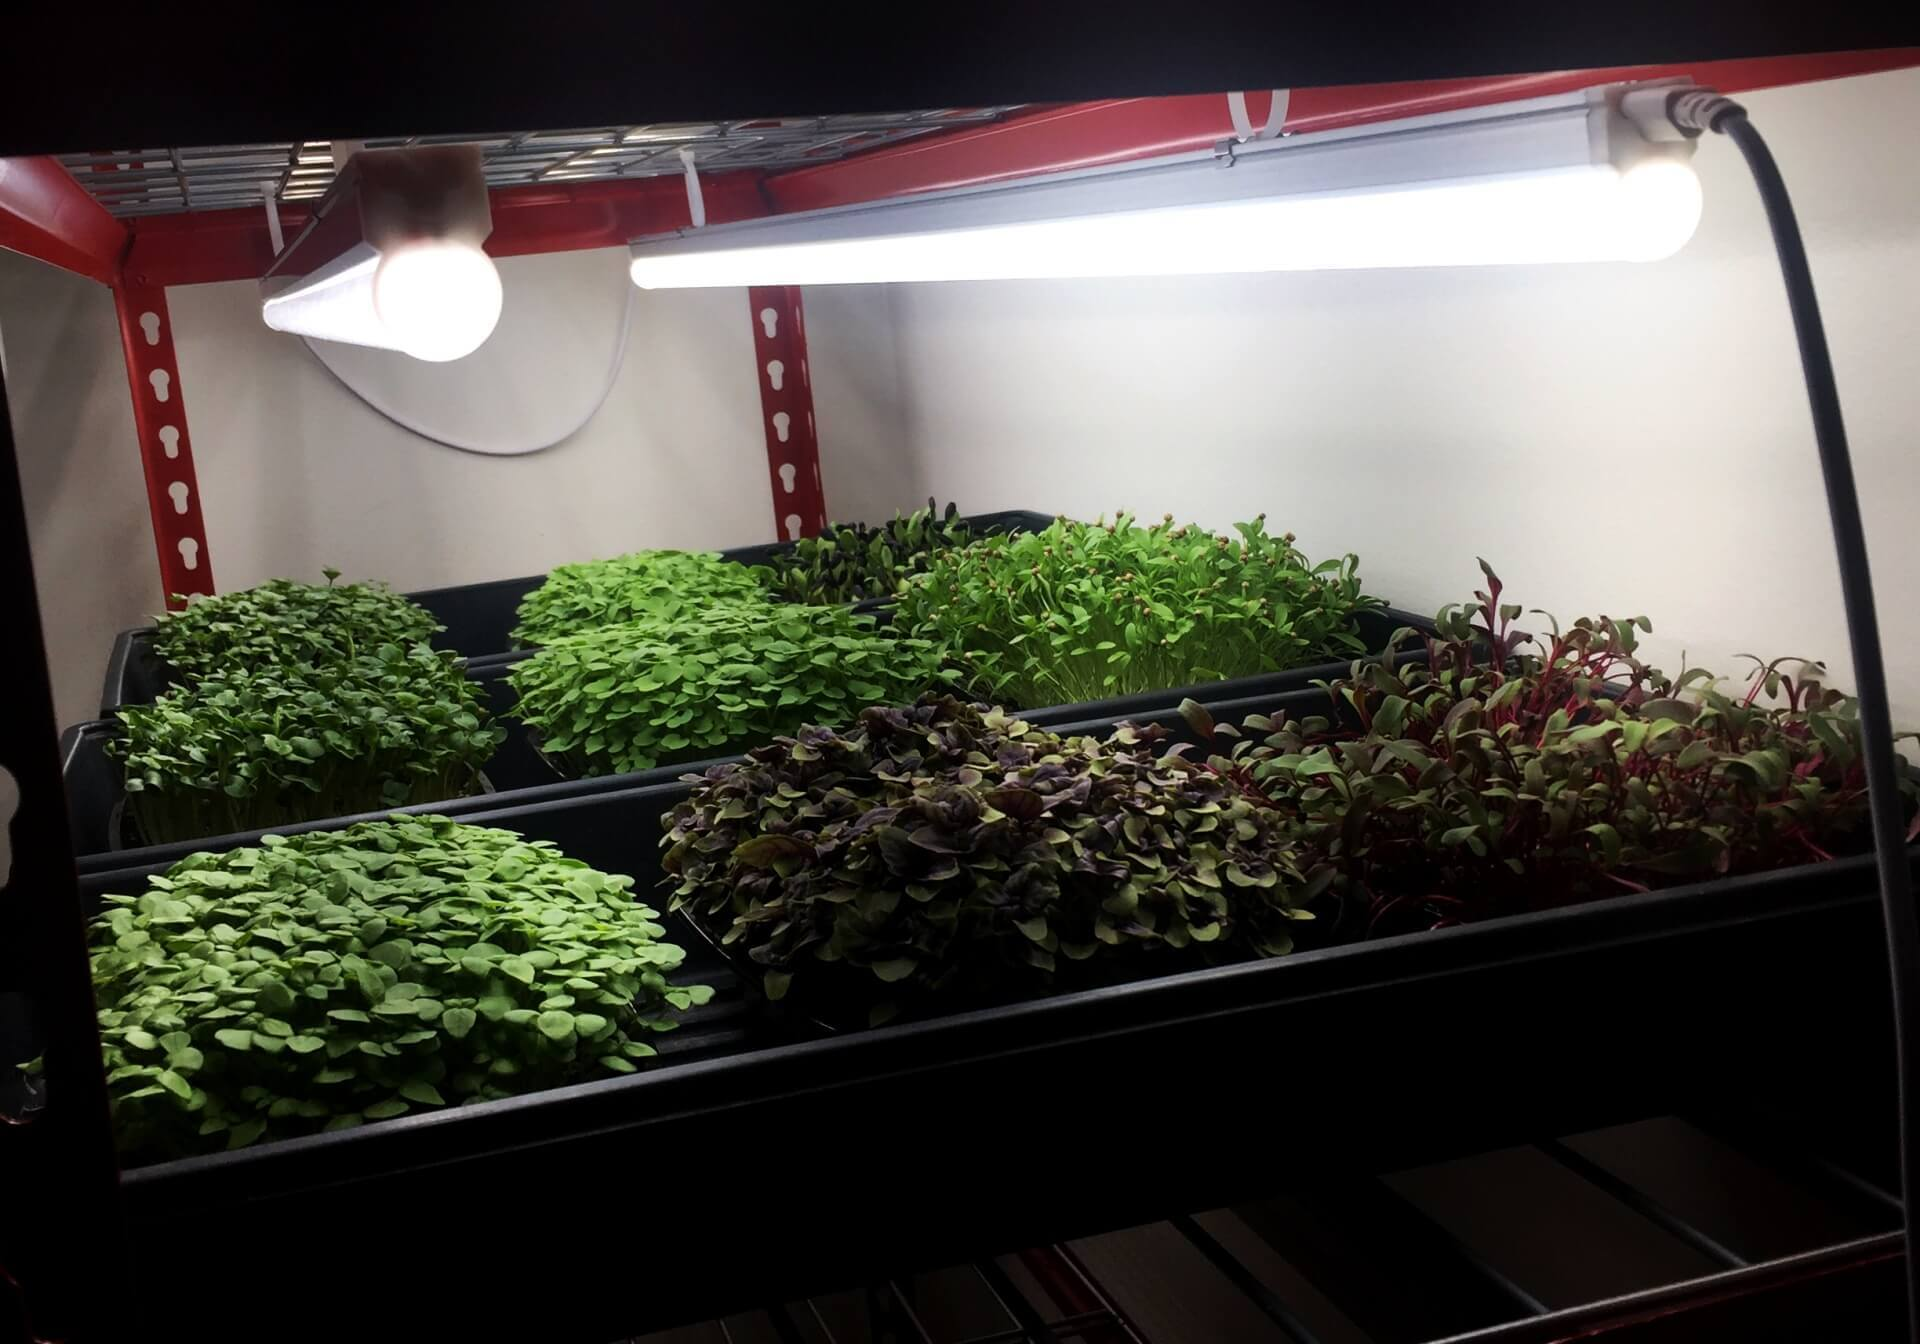 Microgreens lights